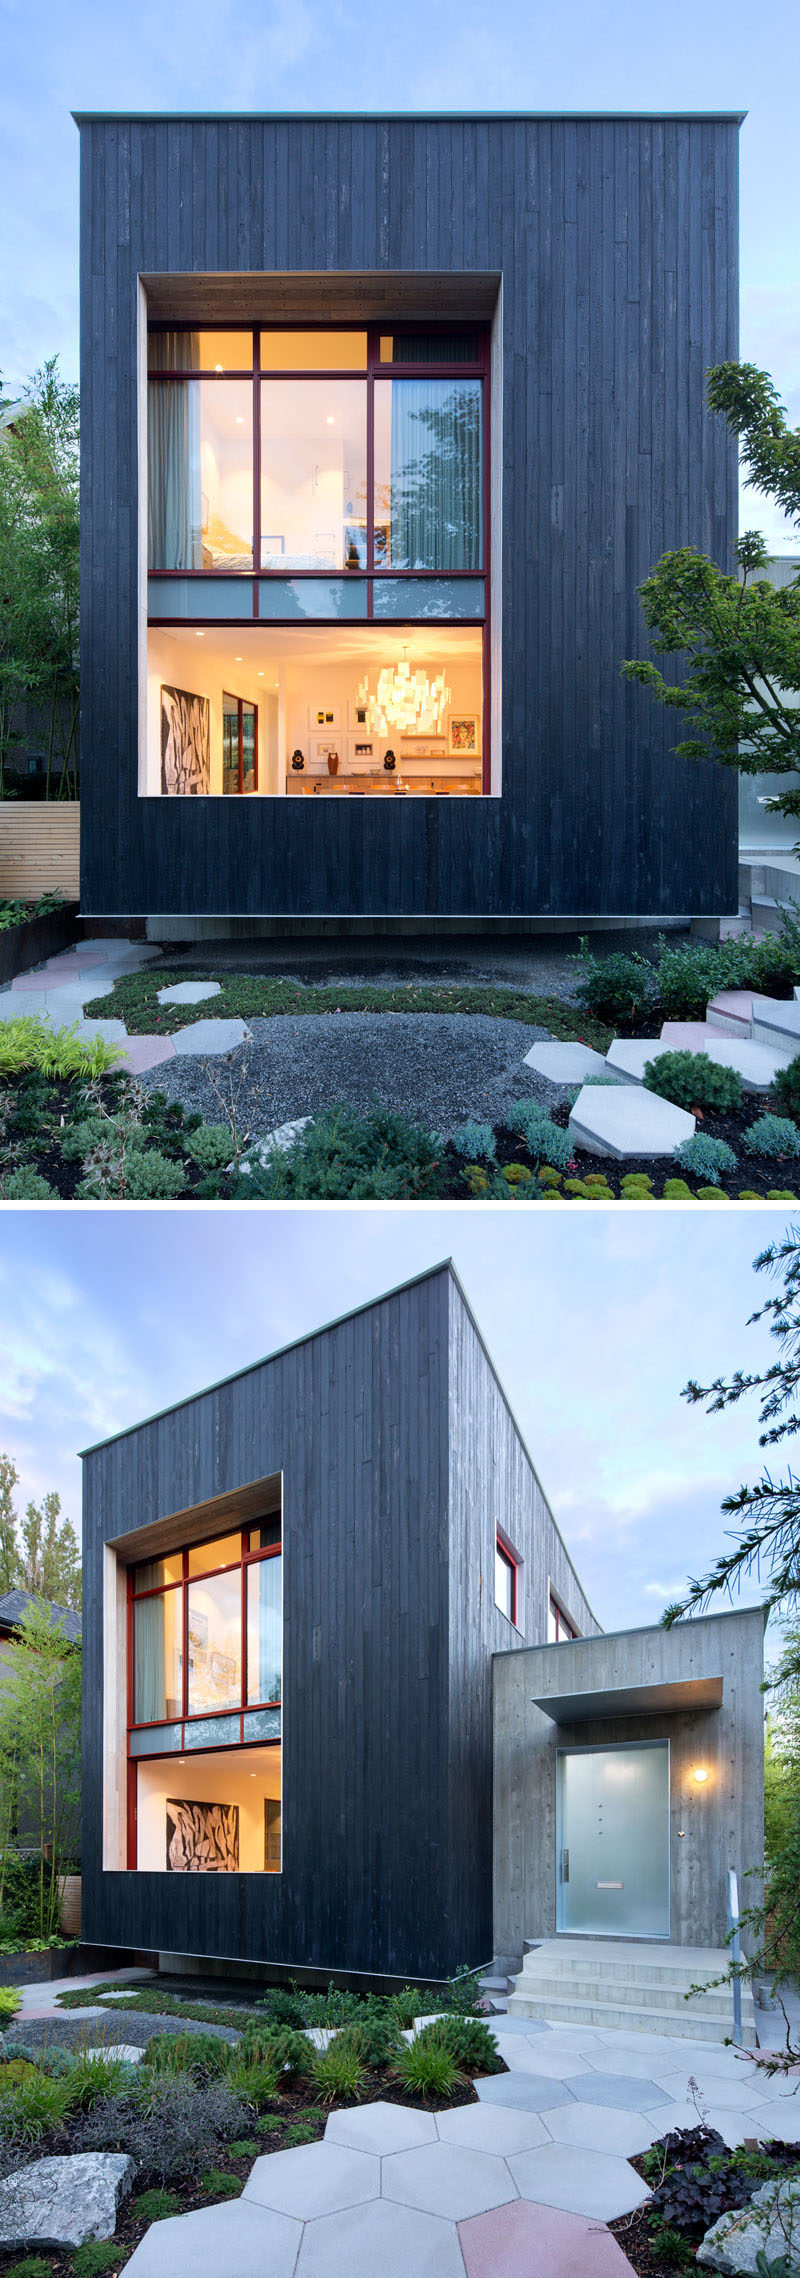 Carbonized Cypress Wood Covers The Exterior Of This New House In